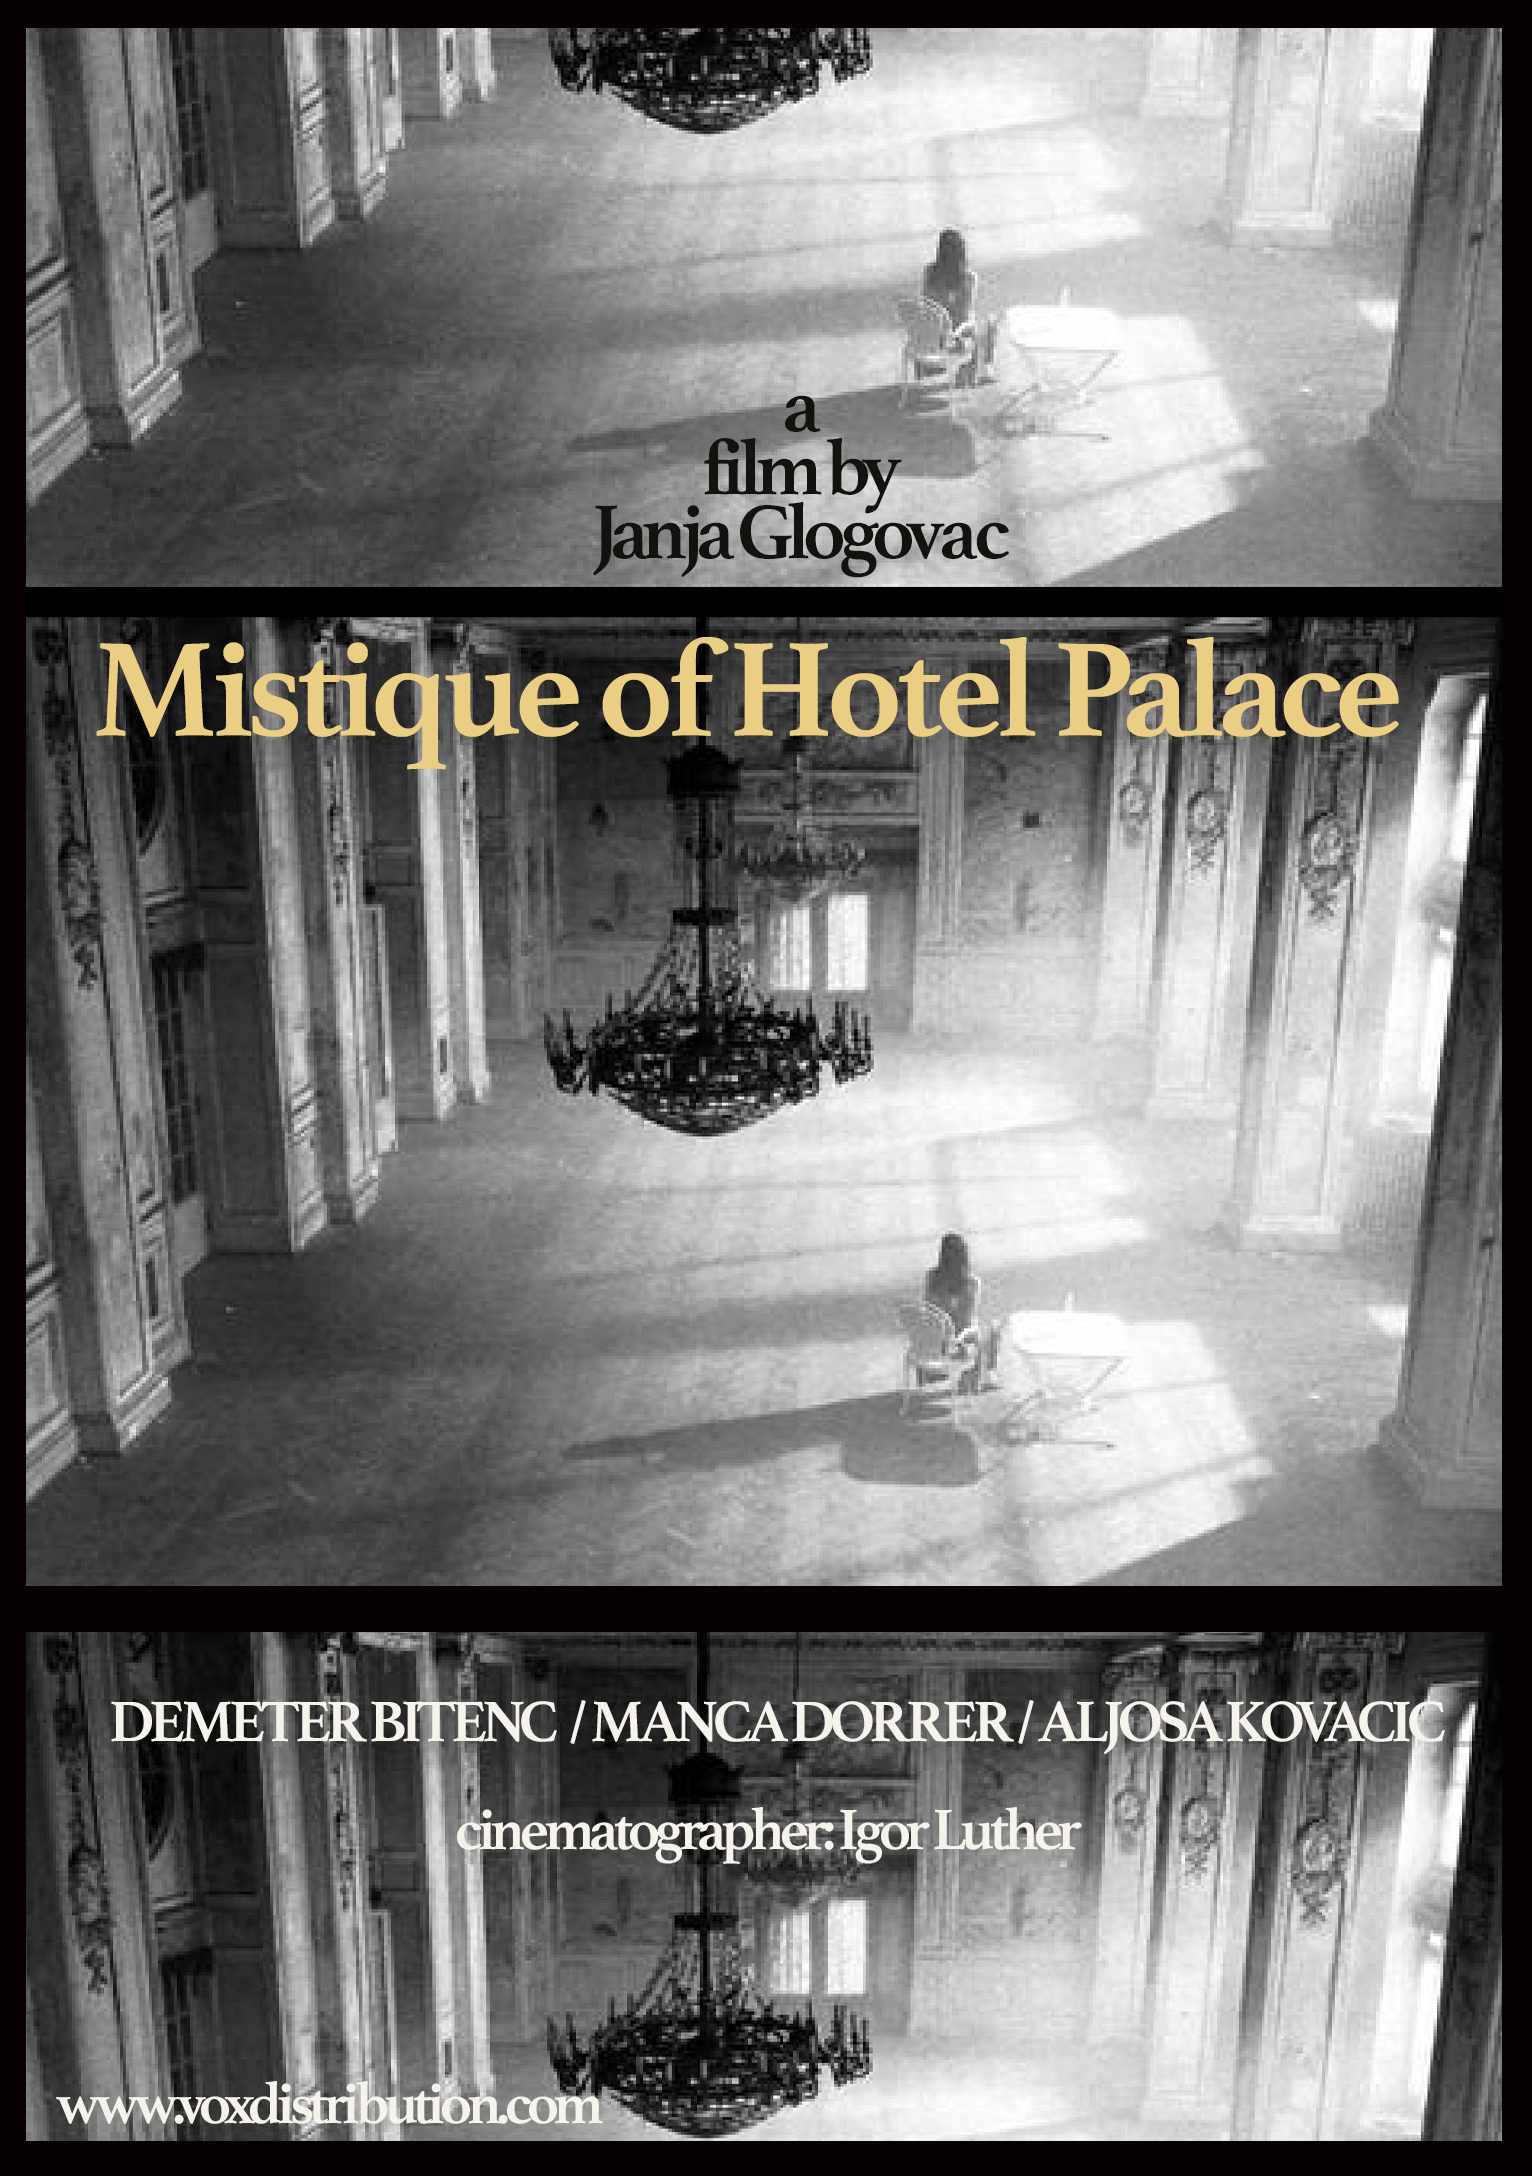 MYSTIC OF HOTEL PALACE